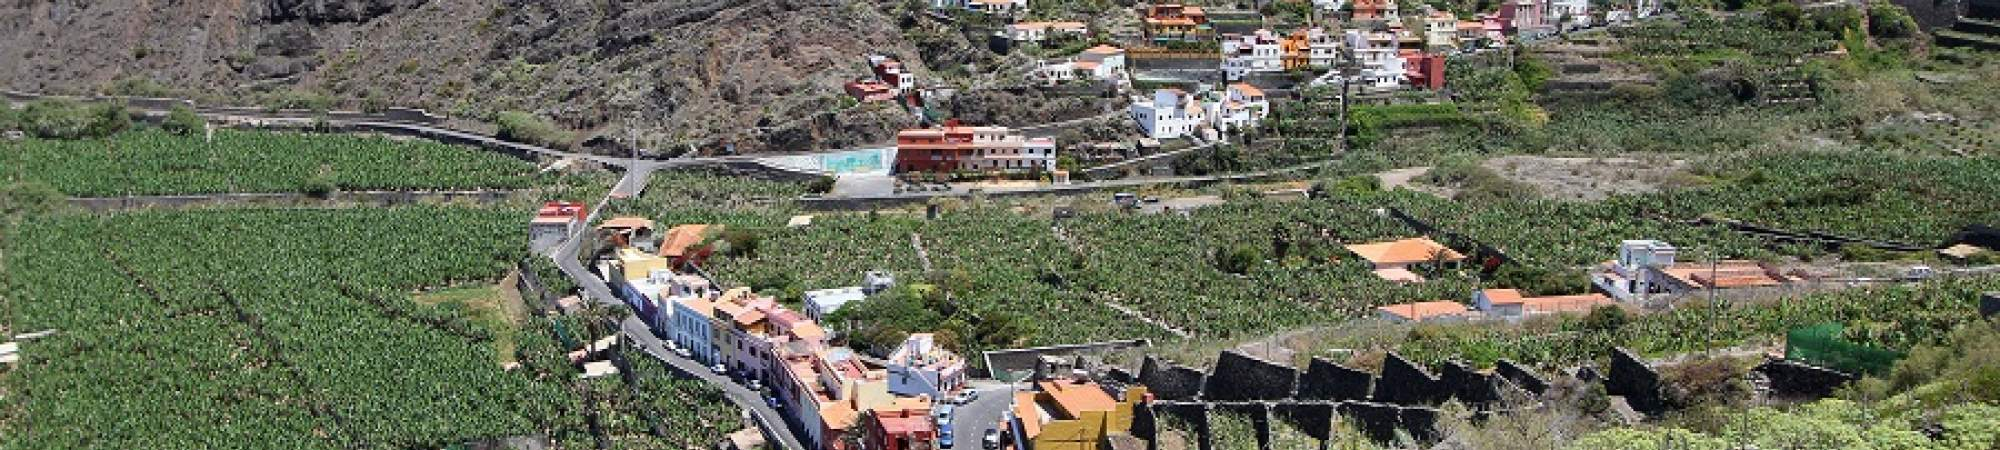 The holiday resort Hermigua on La Gomera